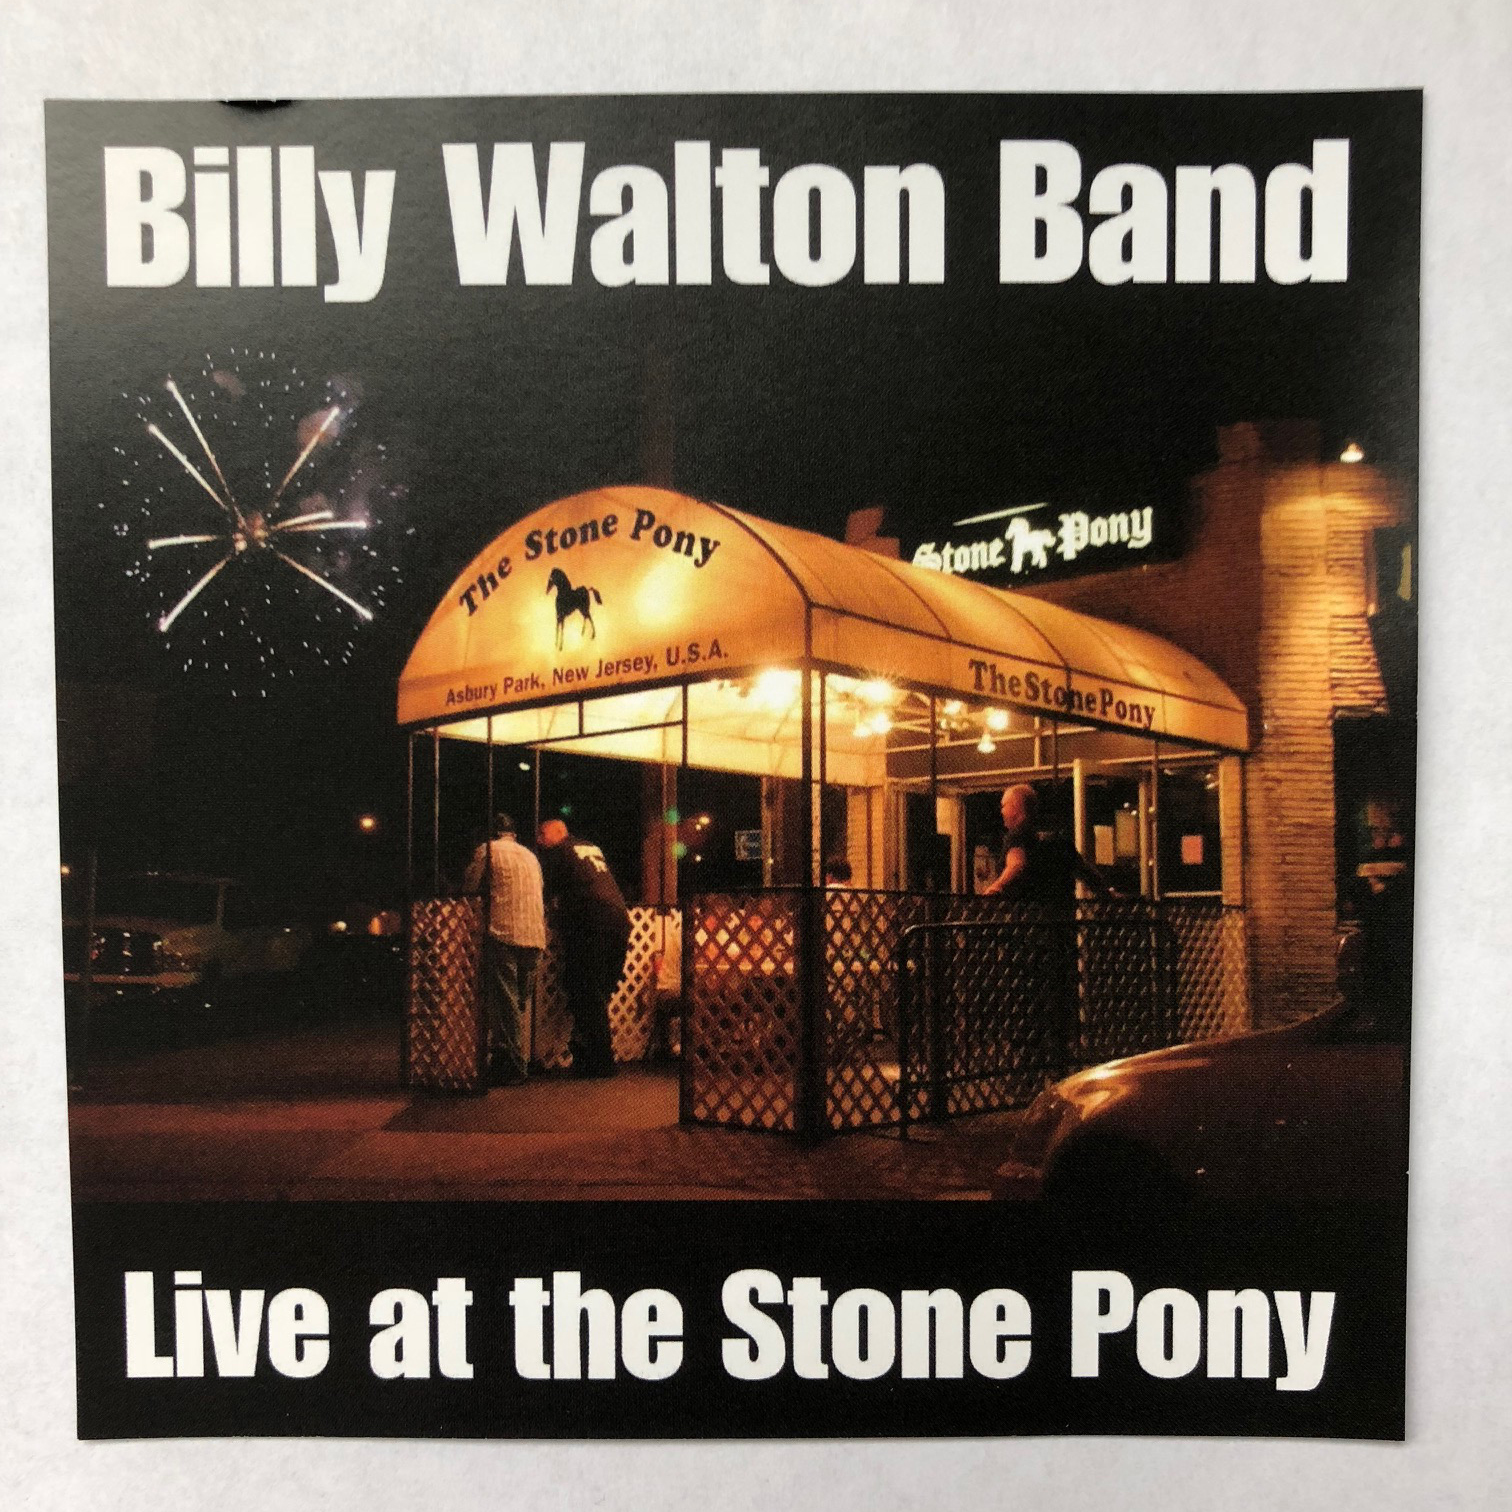 Live at The Stone Pony